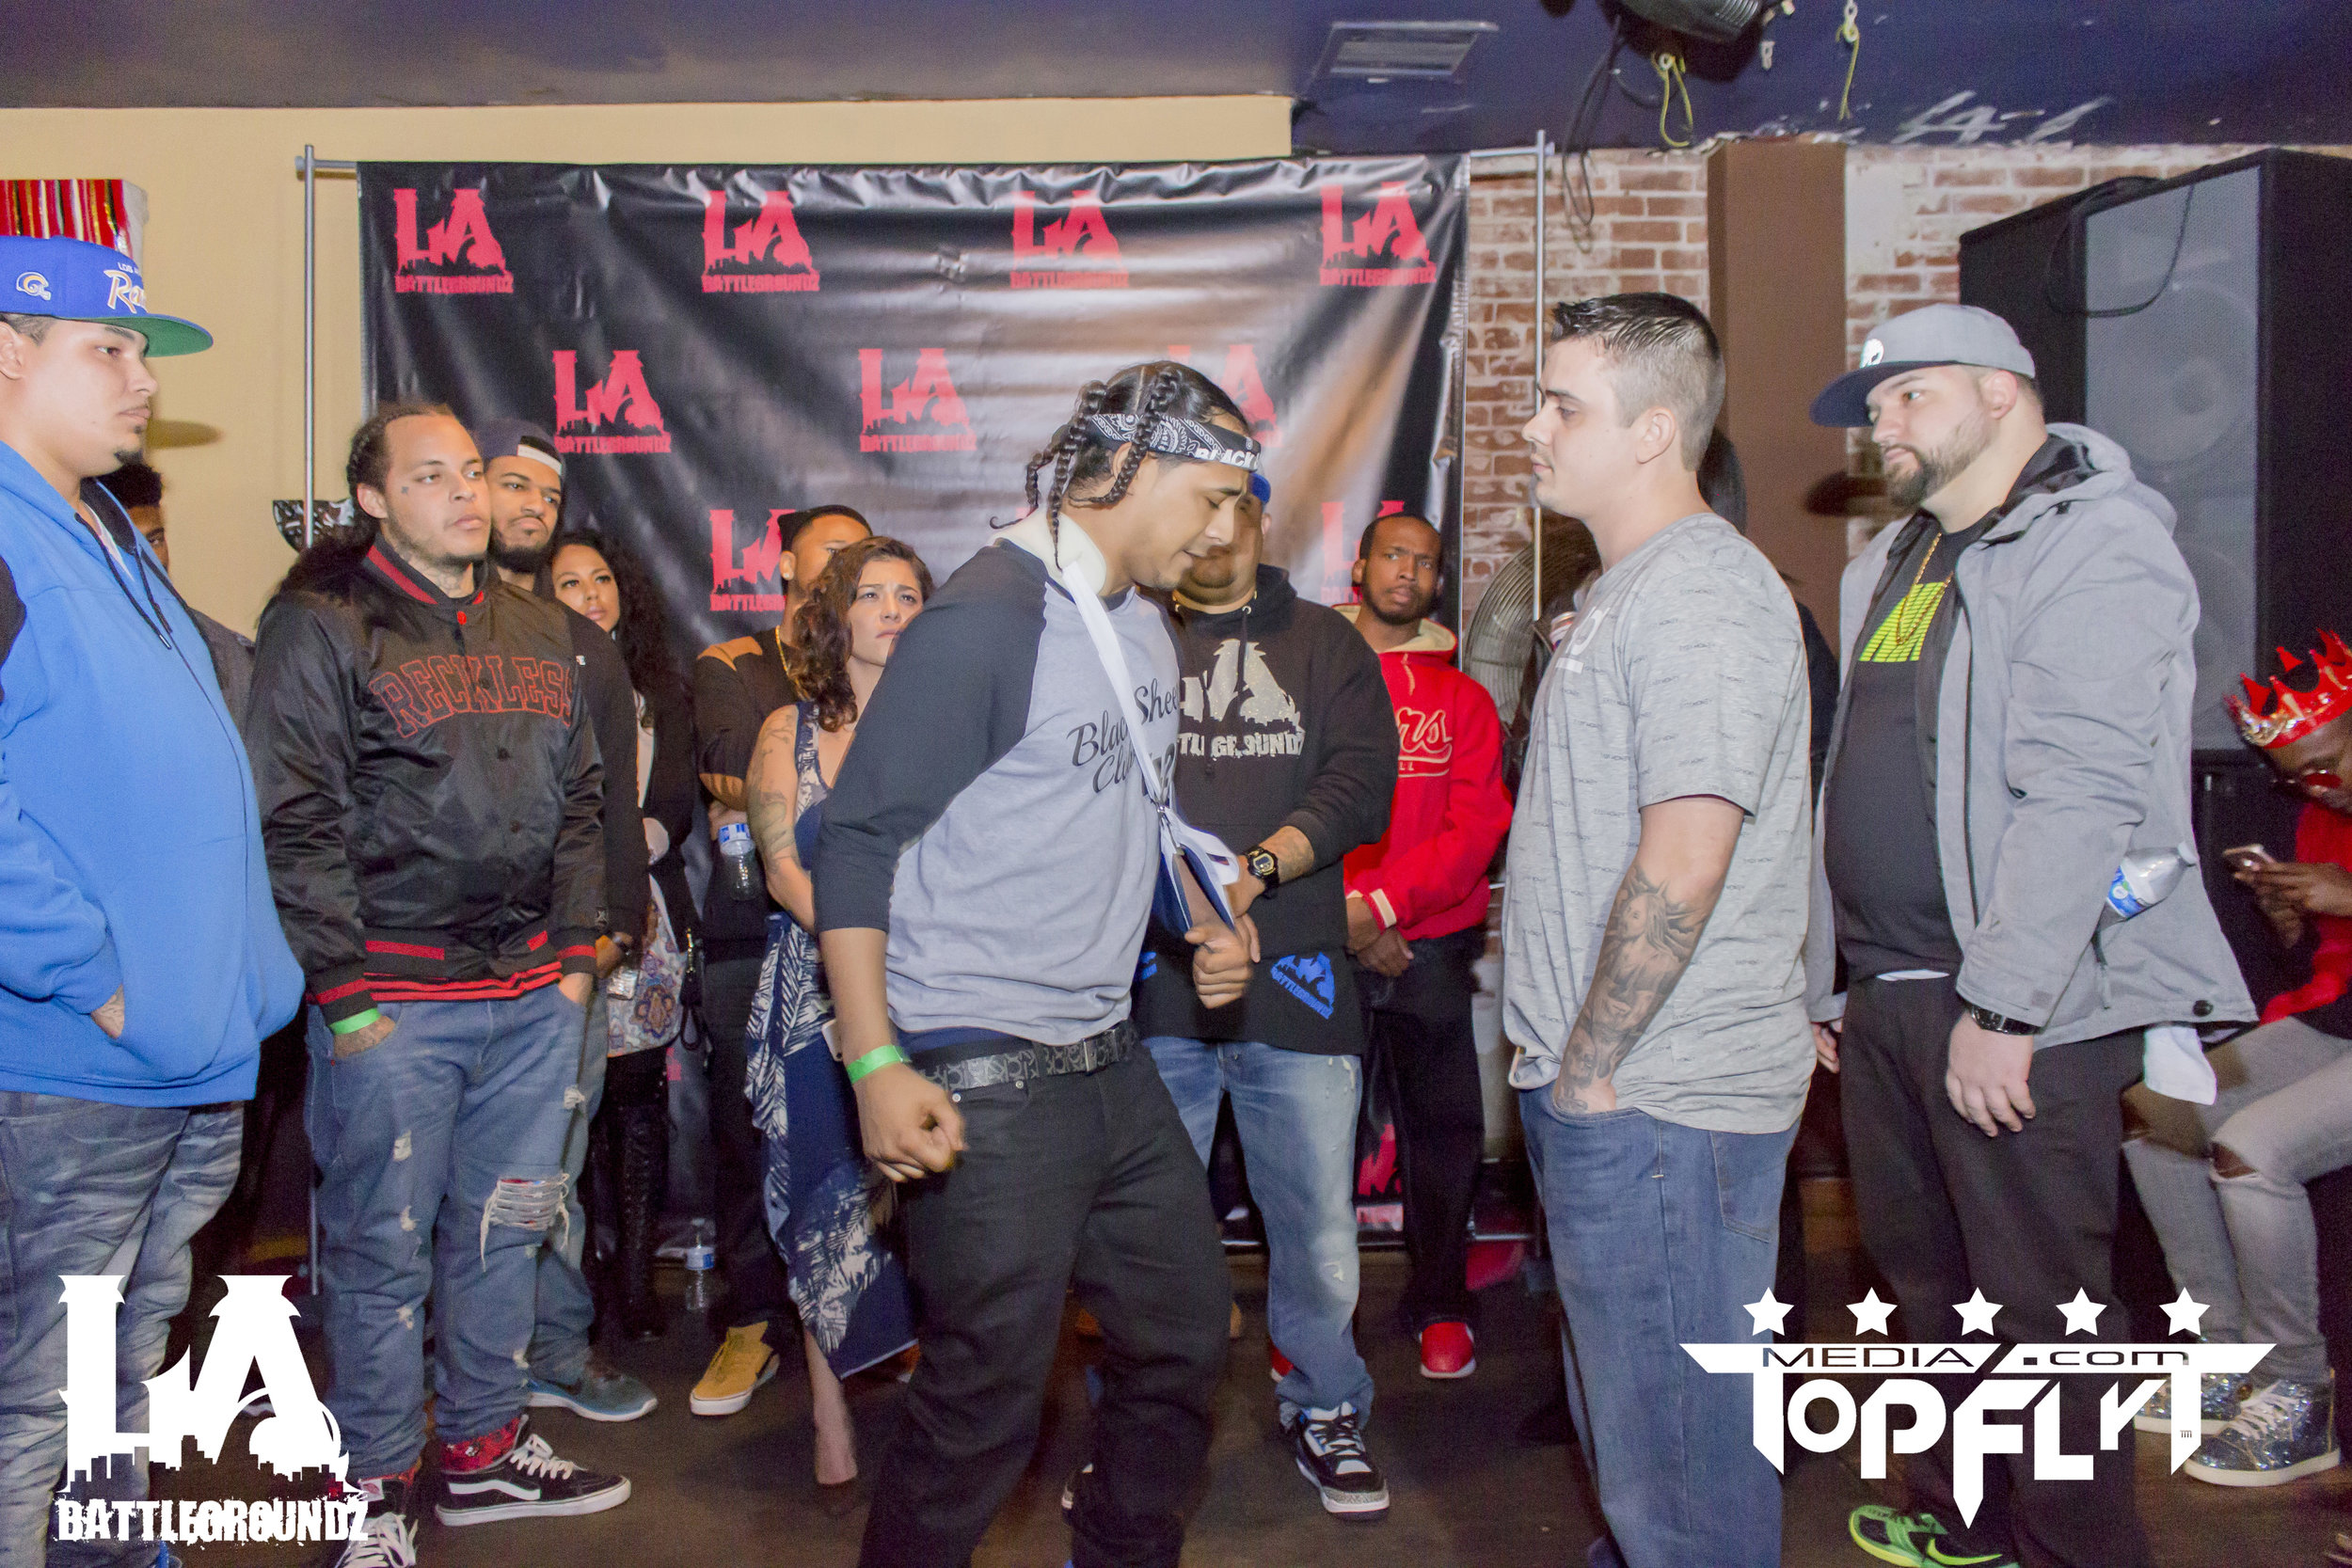 LA Battlegroundz - Decembarfest - The Christening_69.jpg